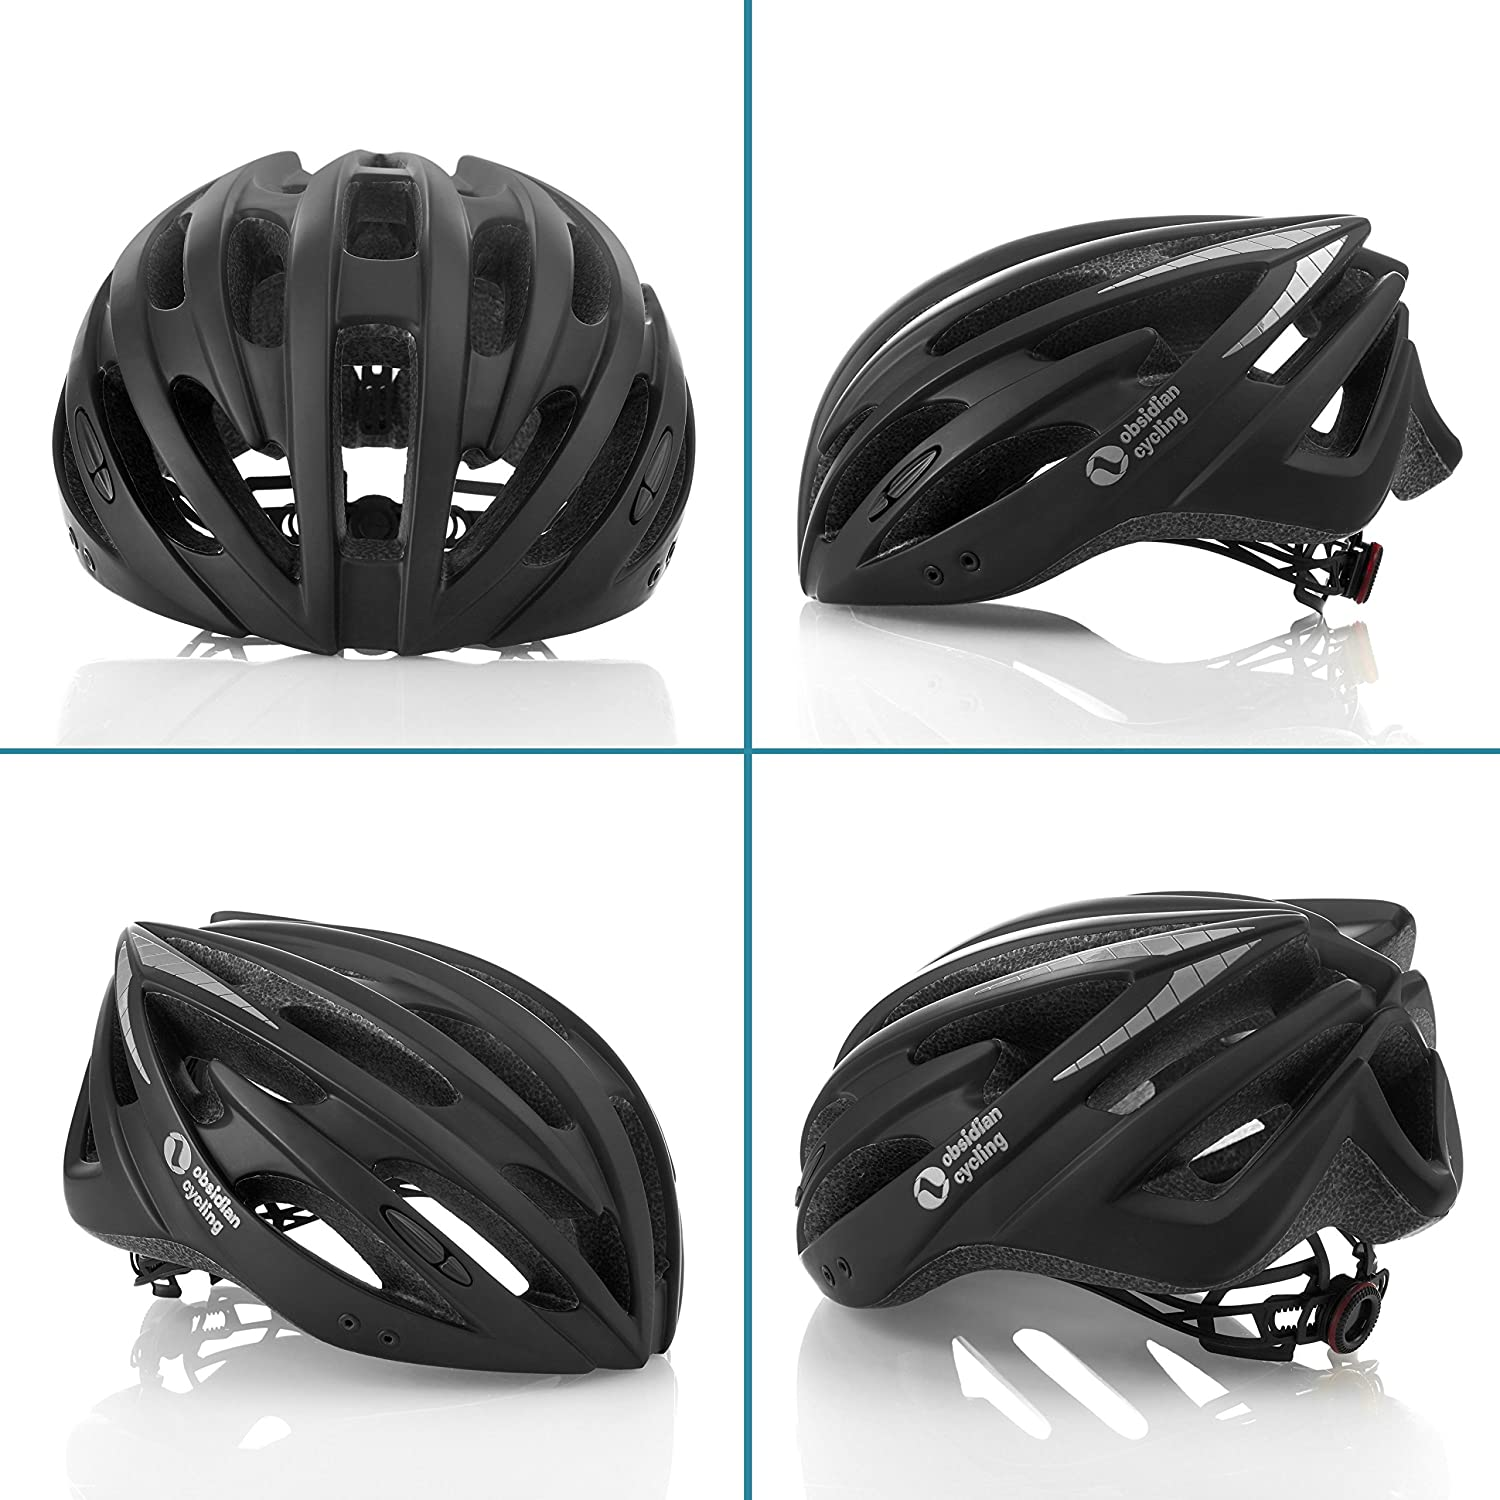 cheapest lightweight helmet 2019